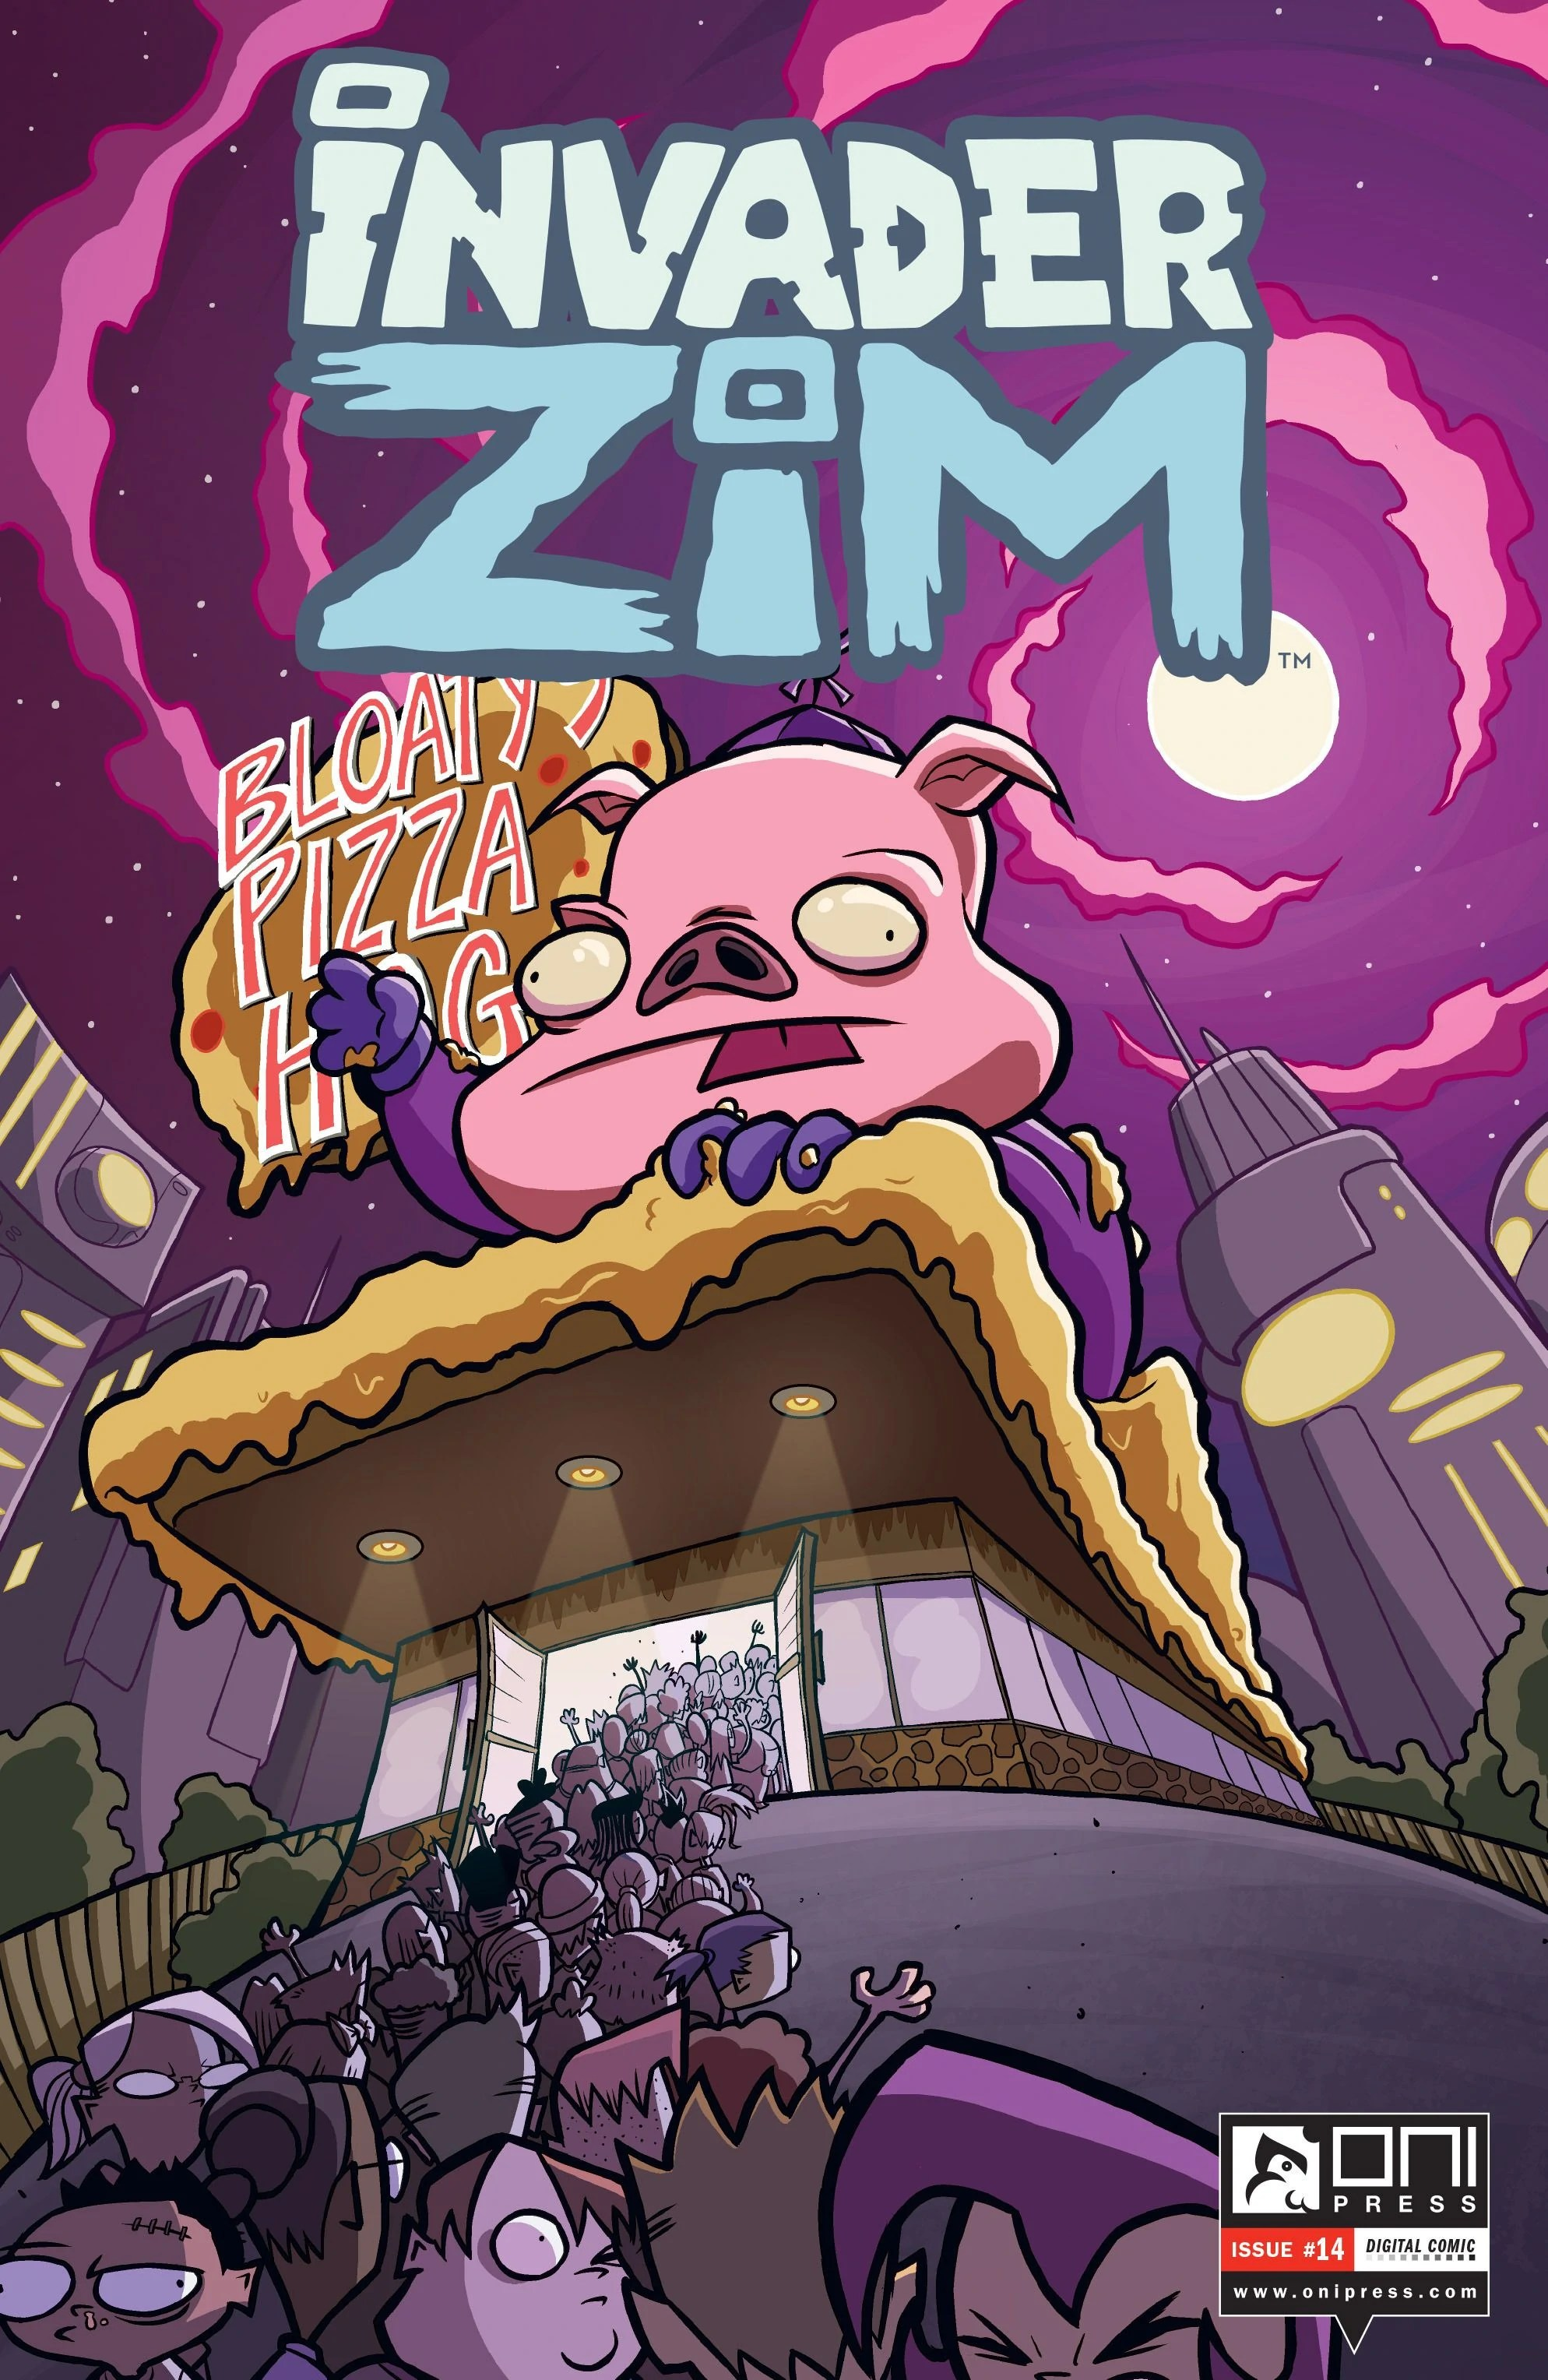 Issue 3 Invader Zim Wiki Fandom Powered By Wikia – Cuitan Dokter